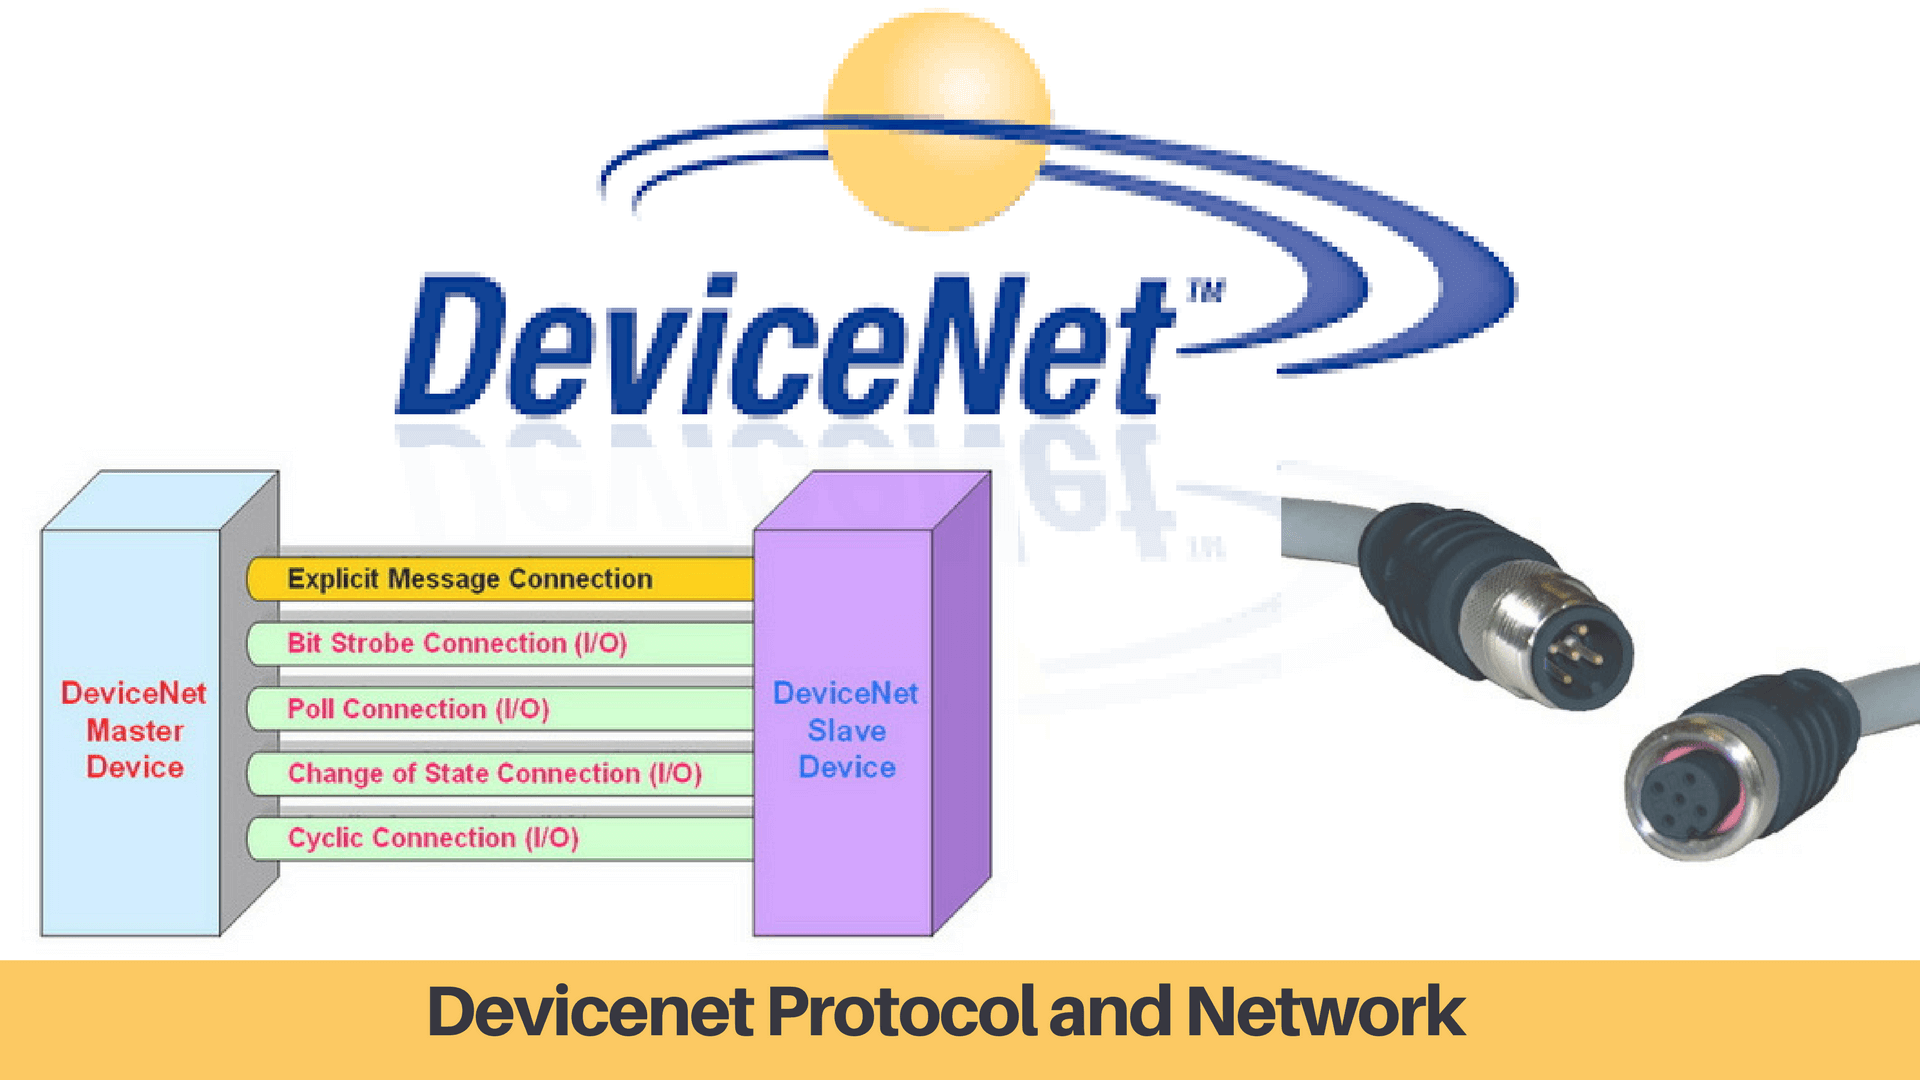 devicenet protocol and network the automization home wiring classes home wiring guide